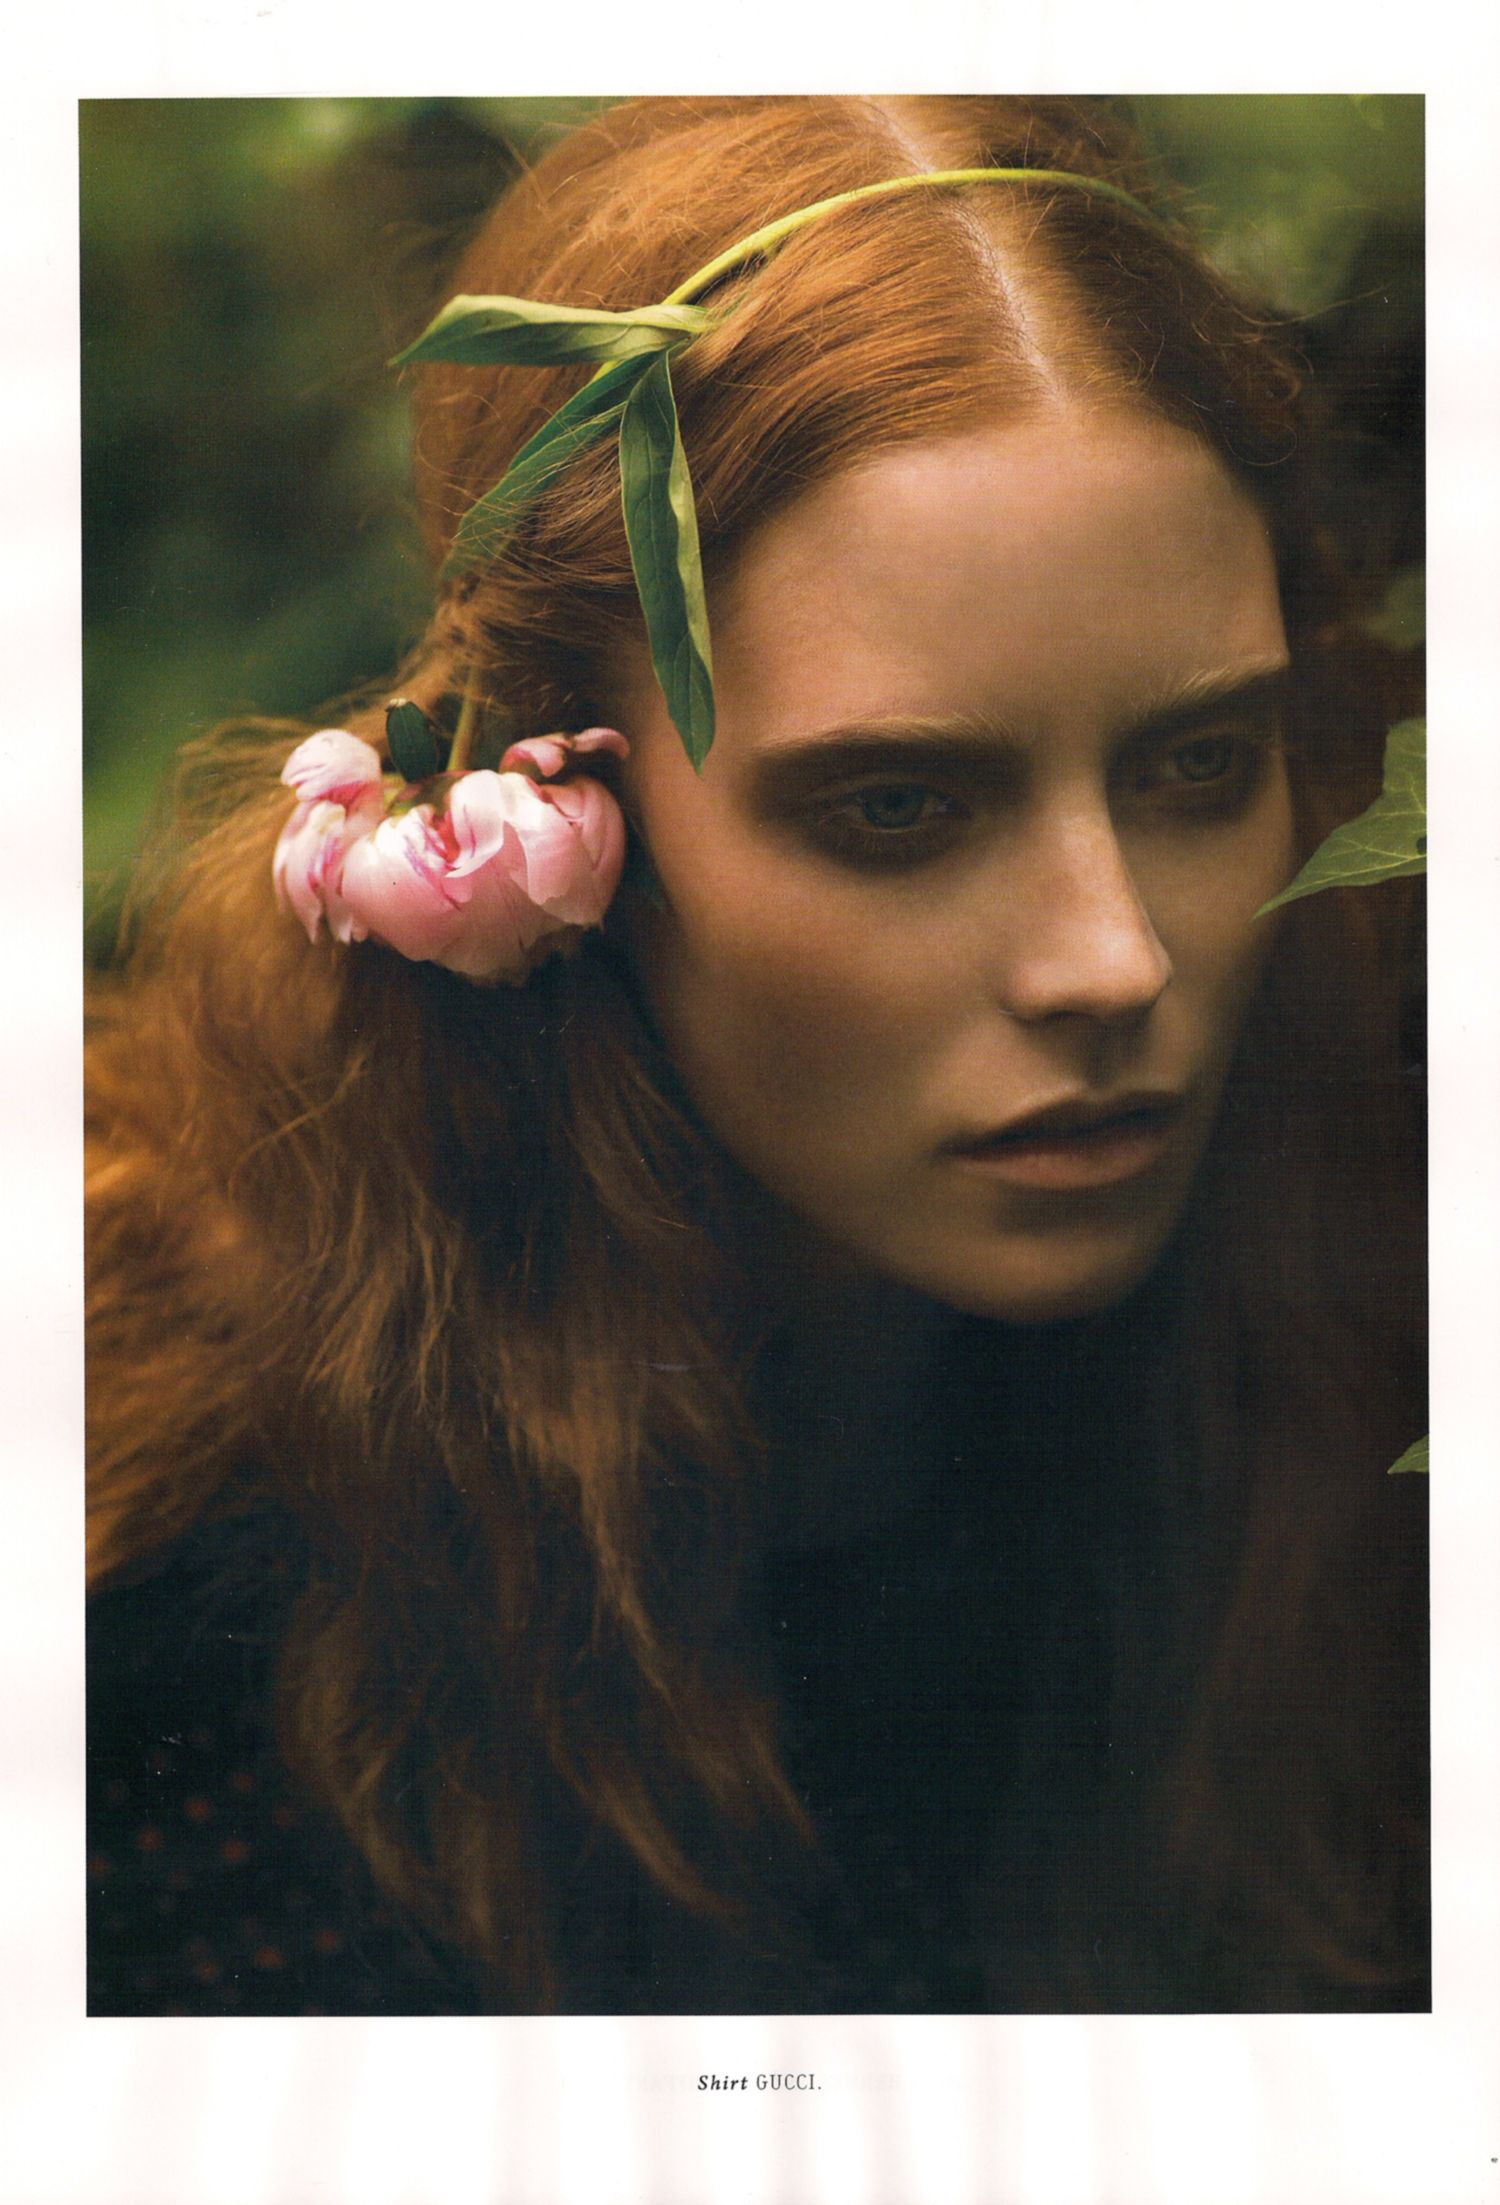 Cecile Sinclair by Nicole Nodland for Lula....  Heather Whitley Gibson beautiful page, photographically,artistic,excellent!